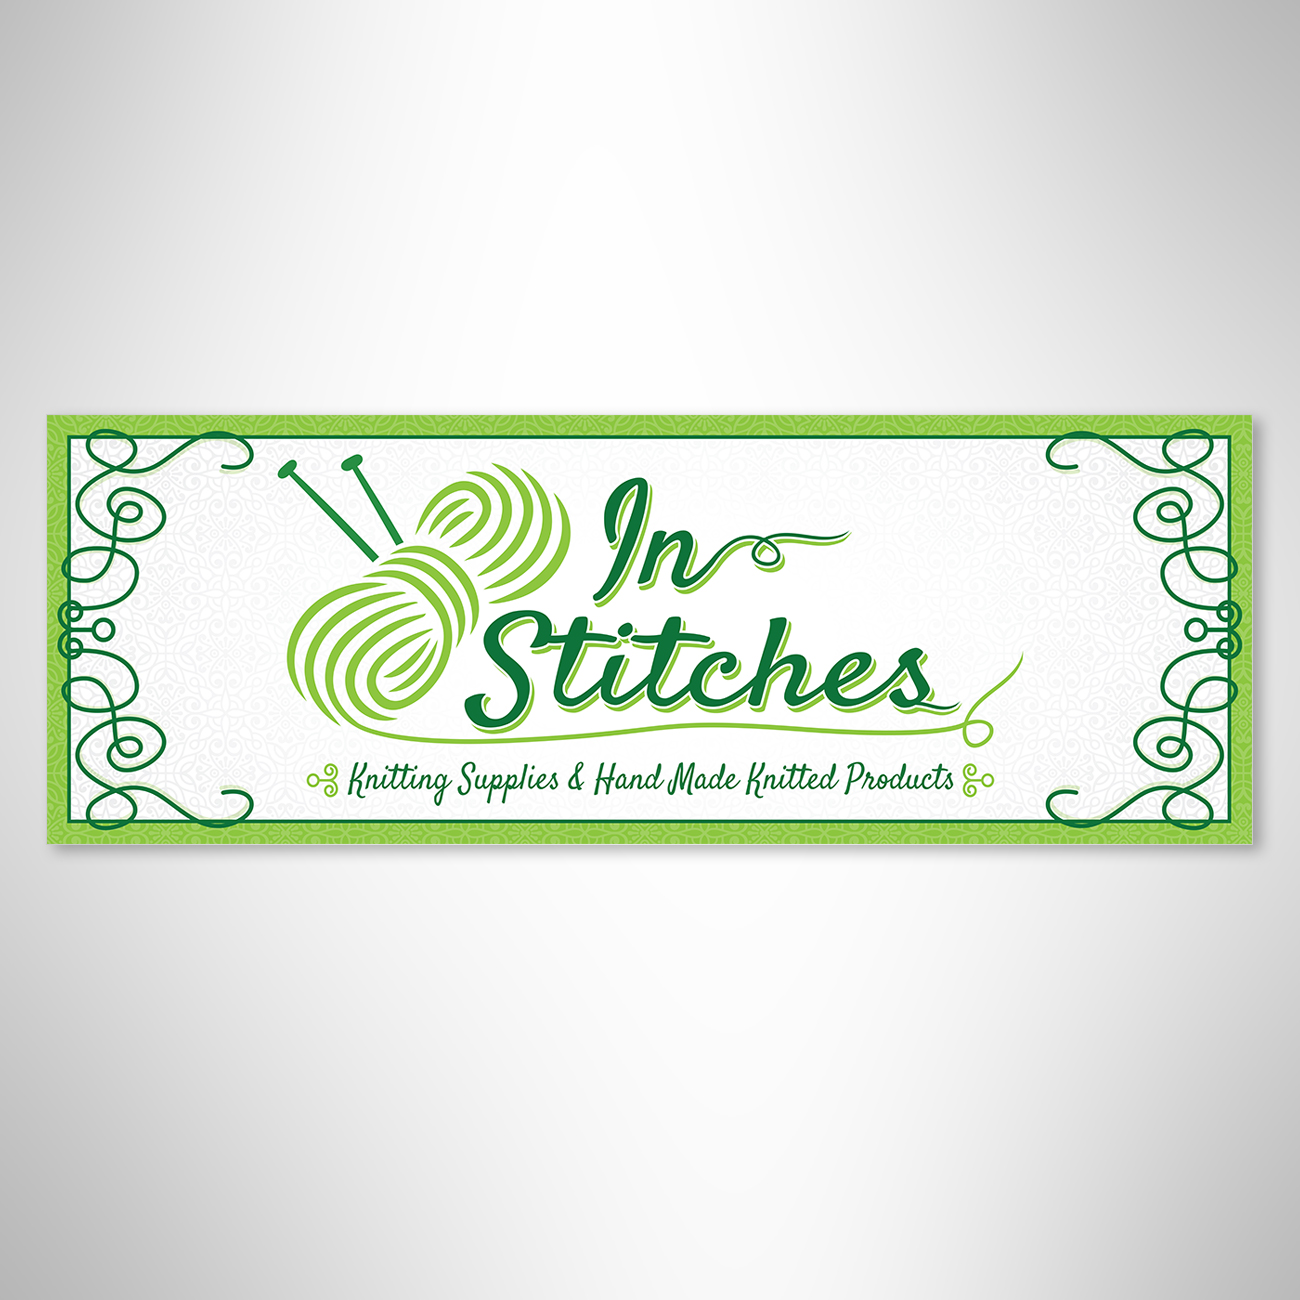 In Stitches sign